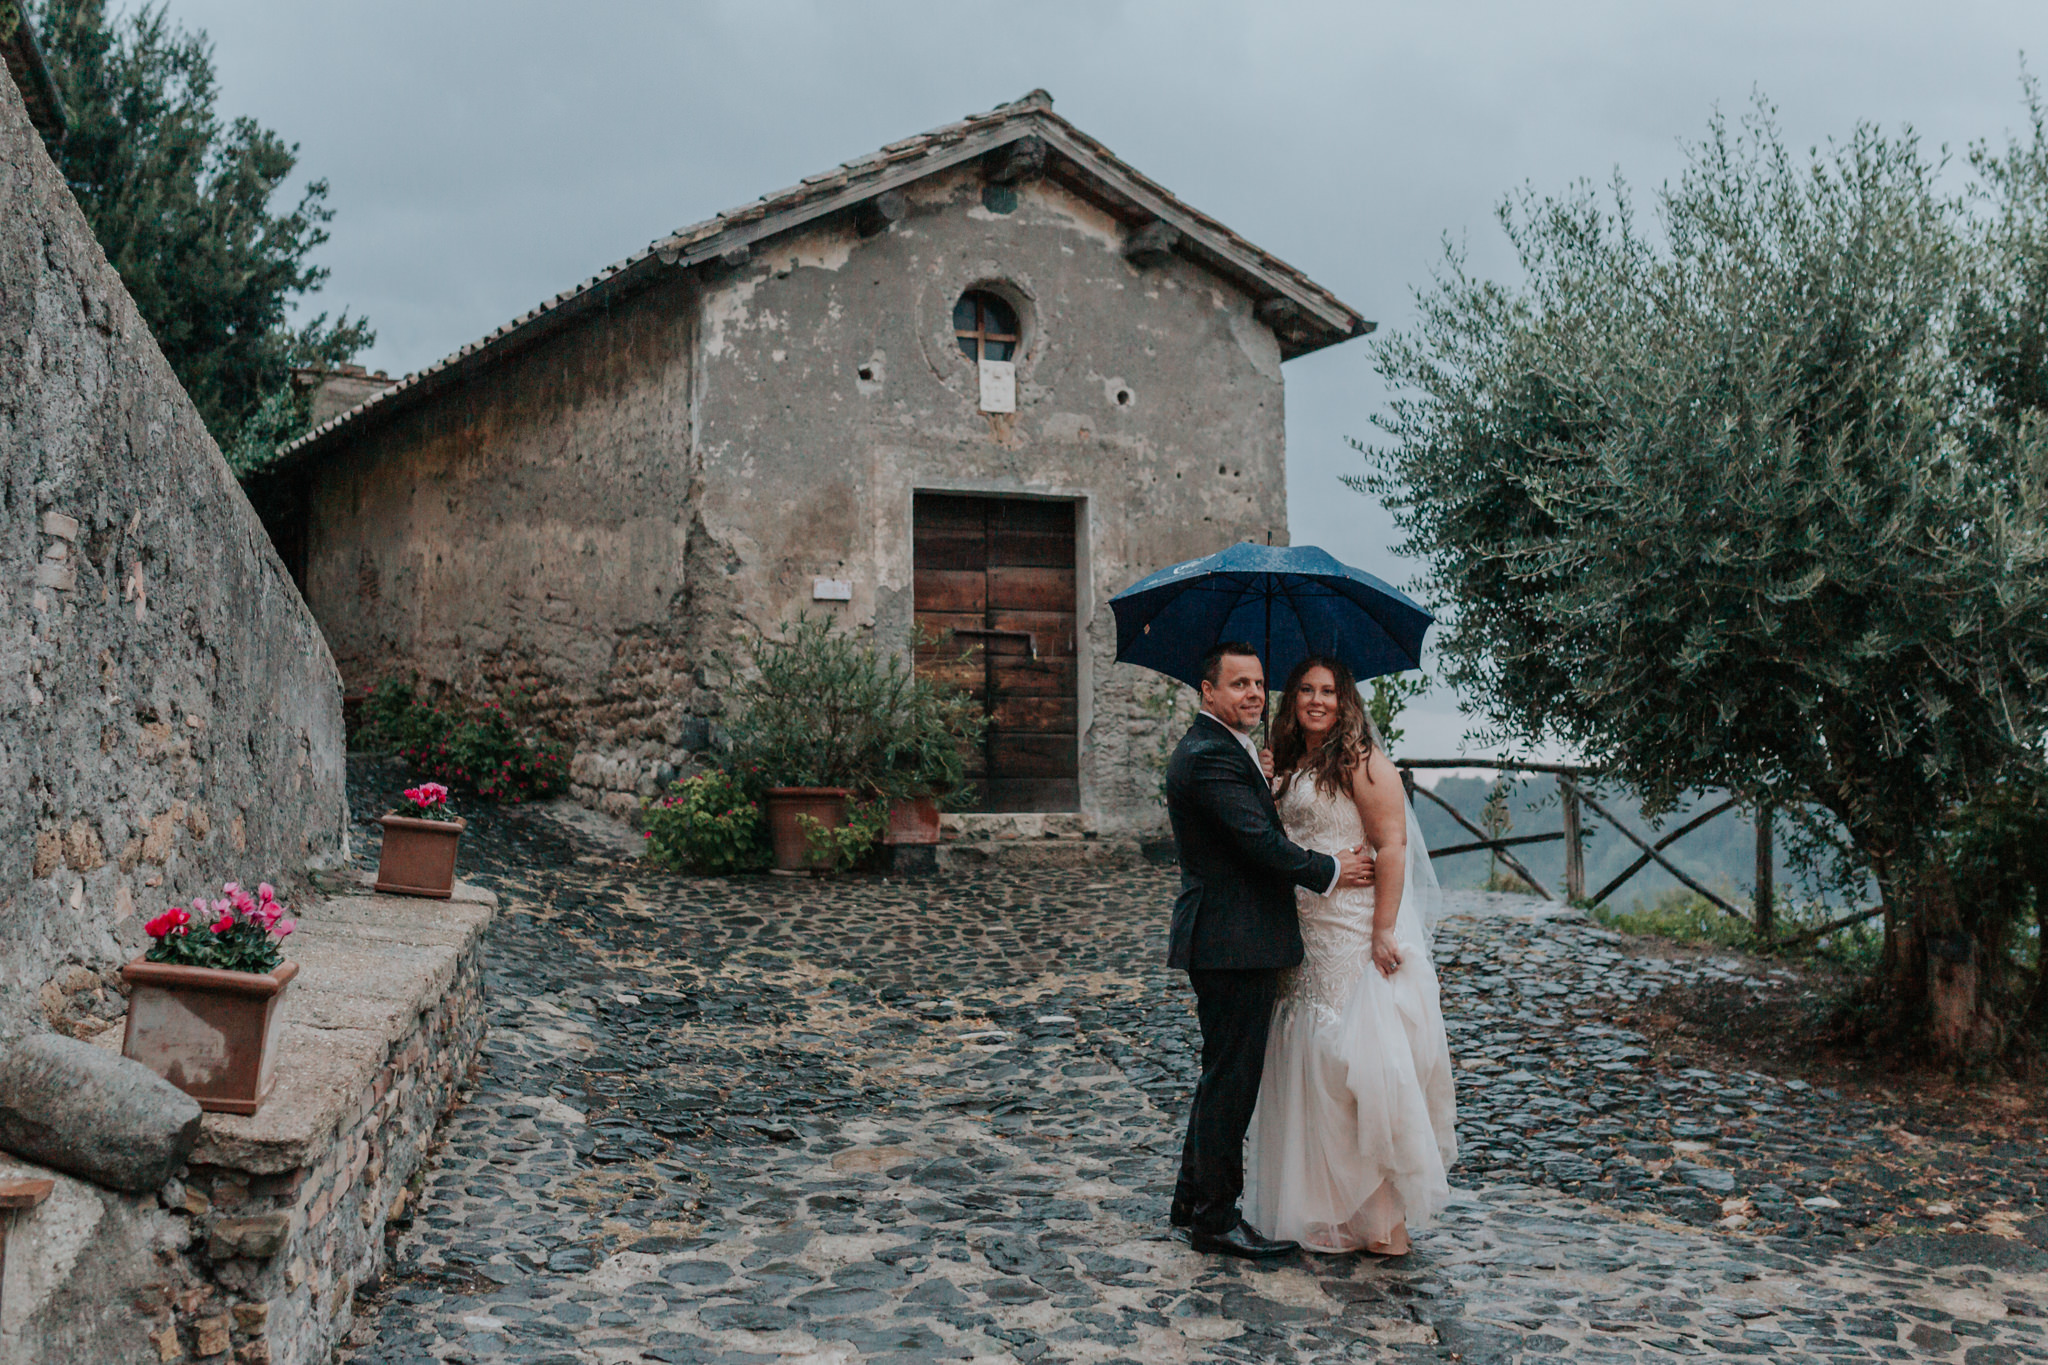 Elkie&Doug_Wedding_Italy_KristieCarrickPhotography_LOW-653.jpg